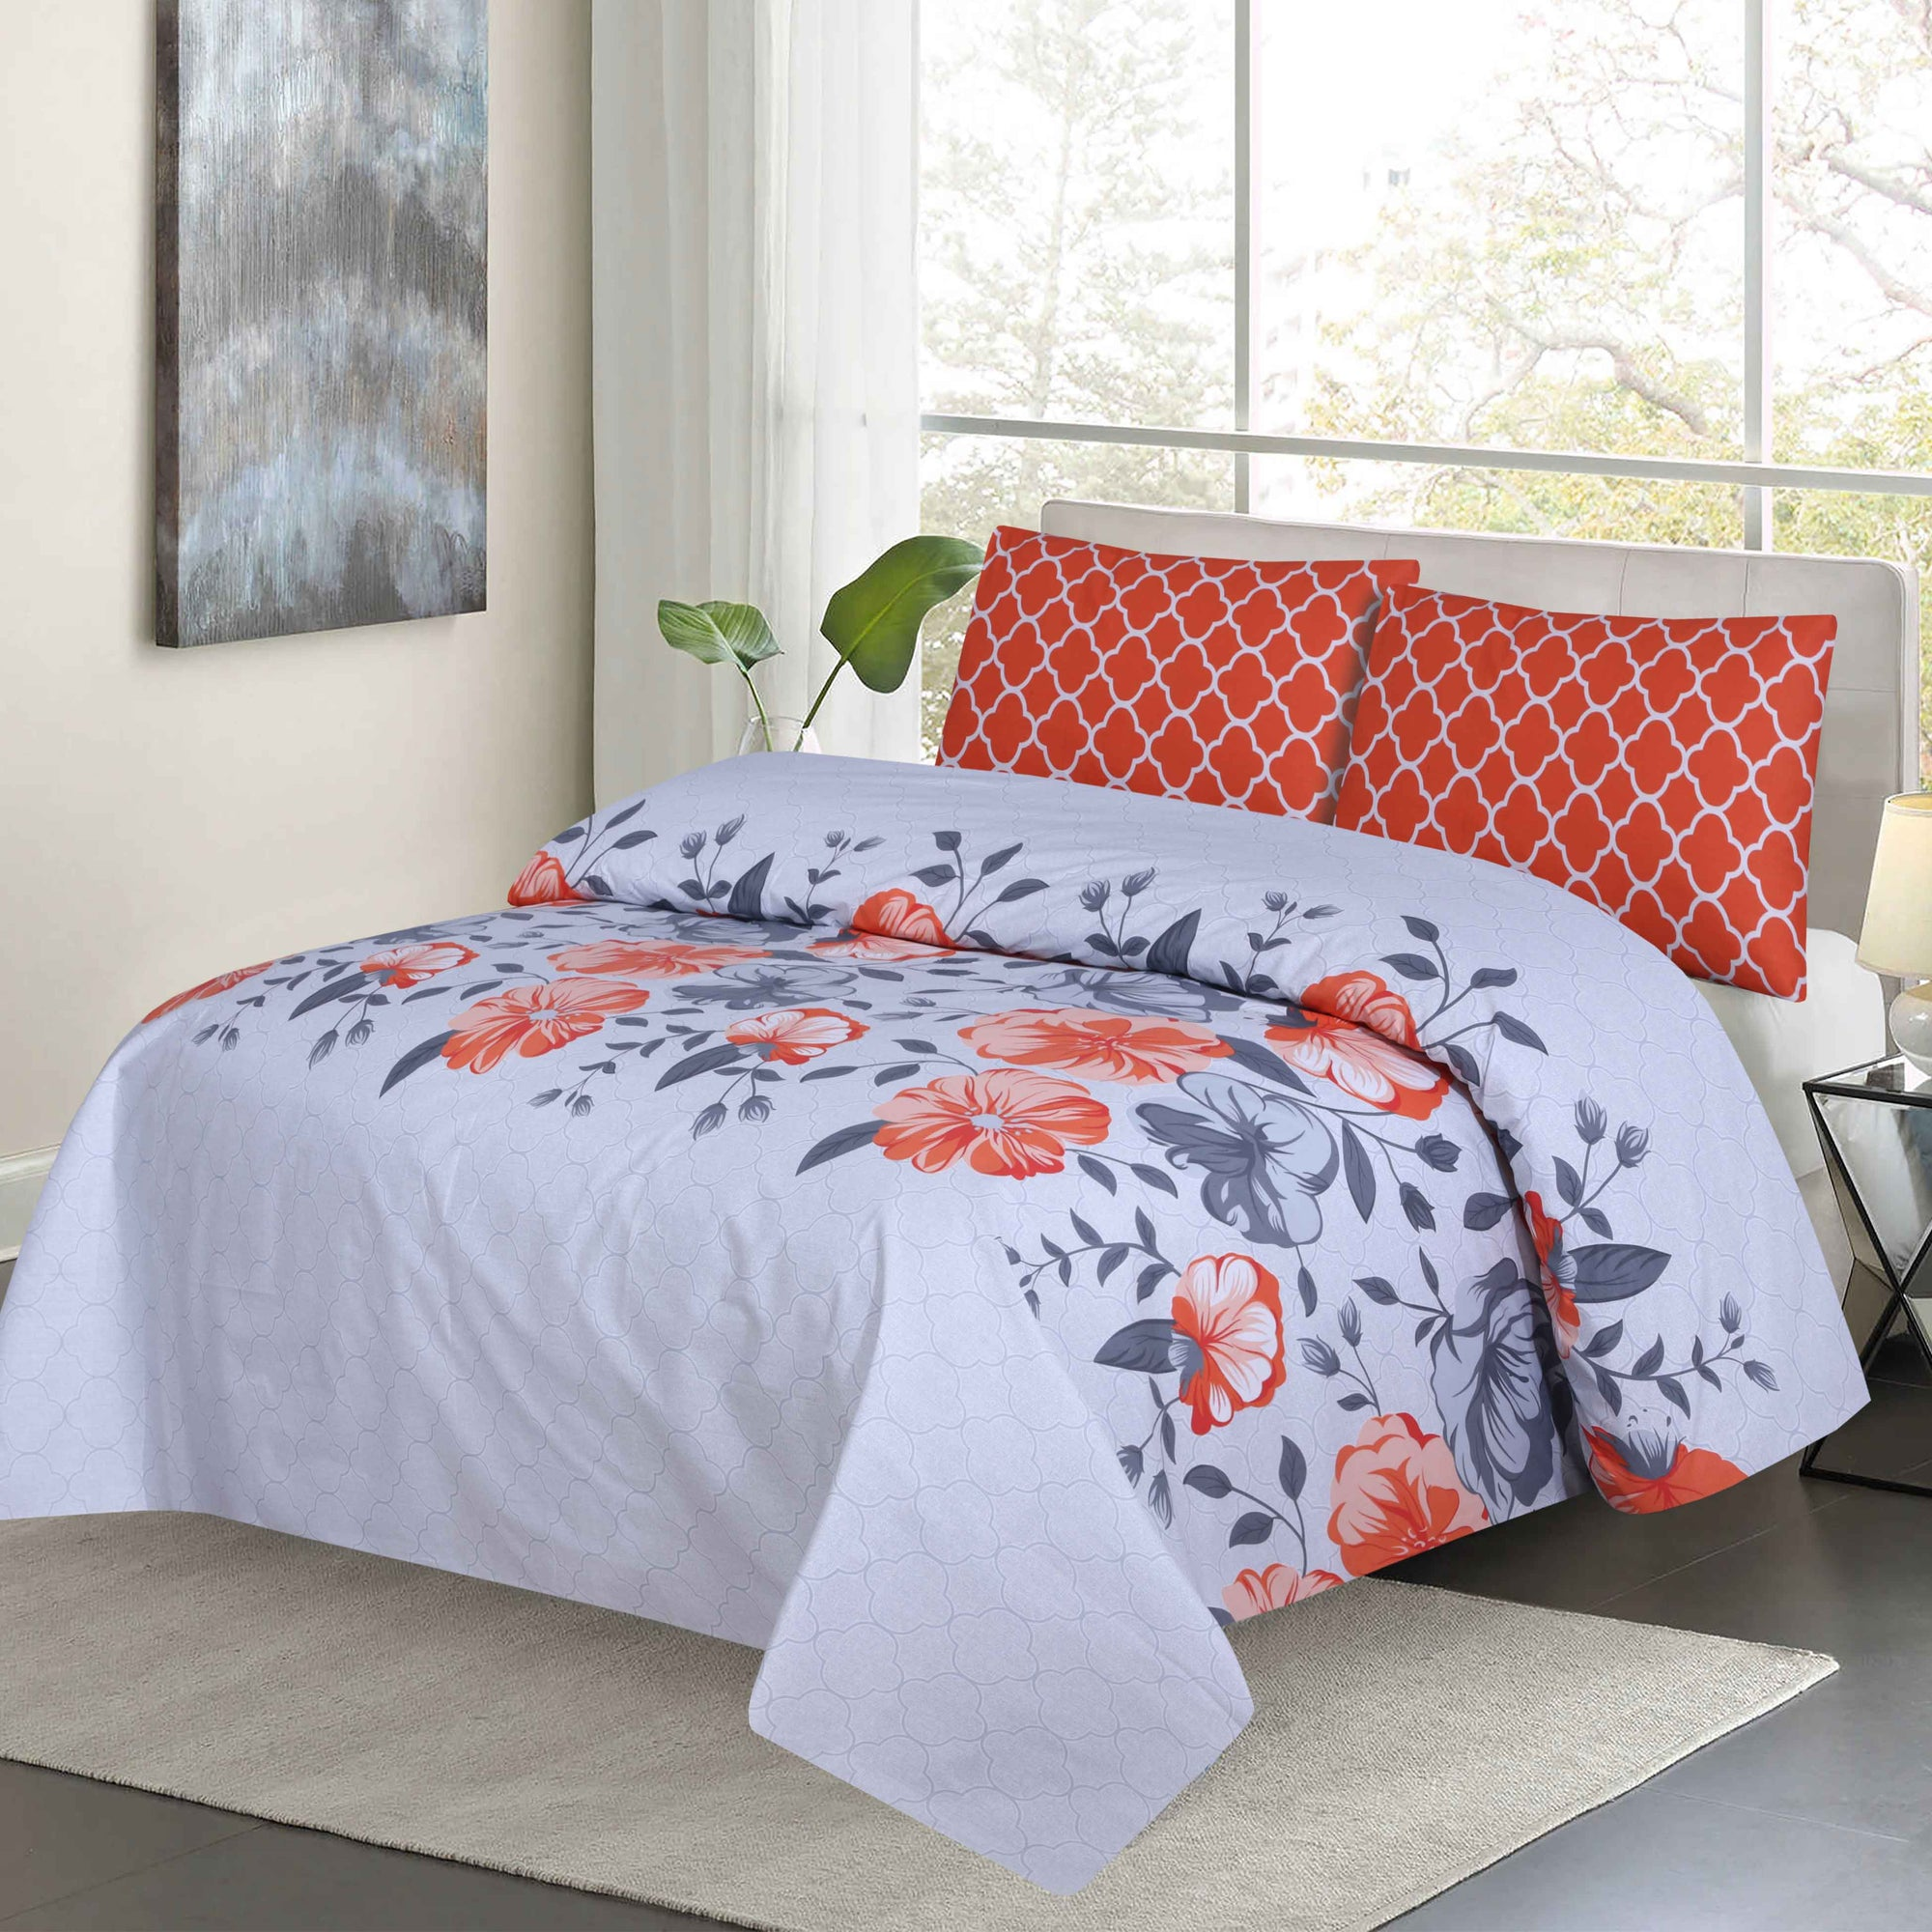 Grace D100 - Cotton pc king size Bedsheet with 2 pillow covers.